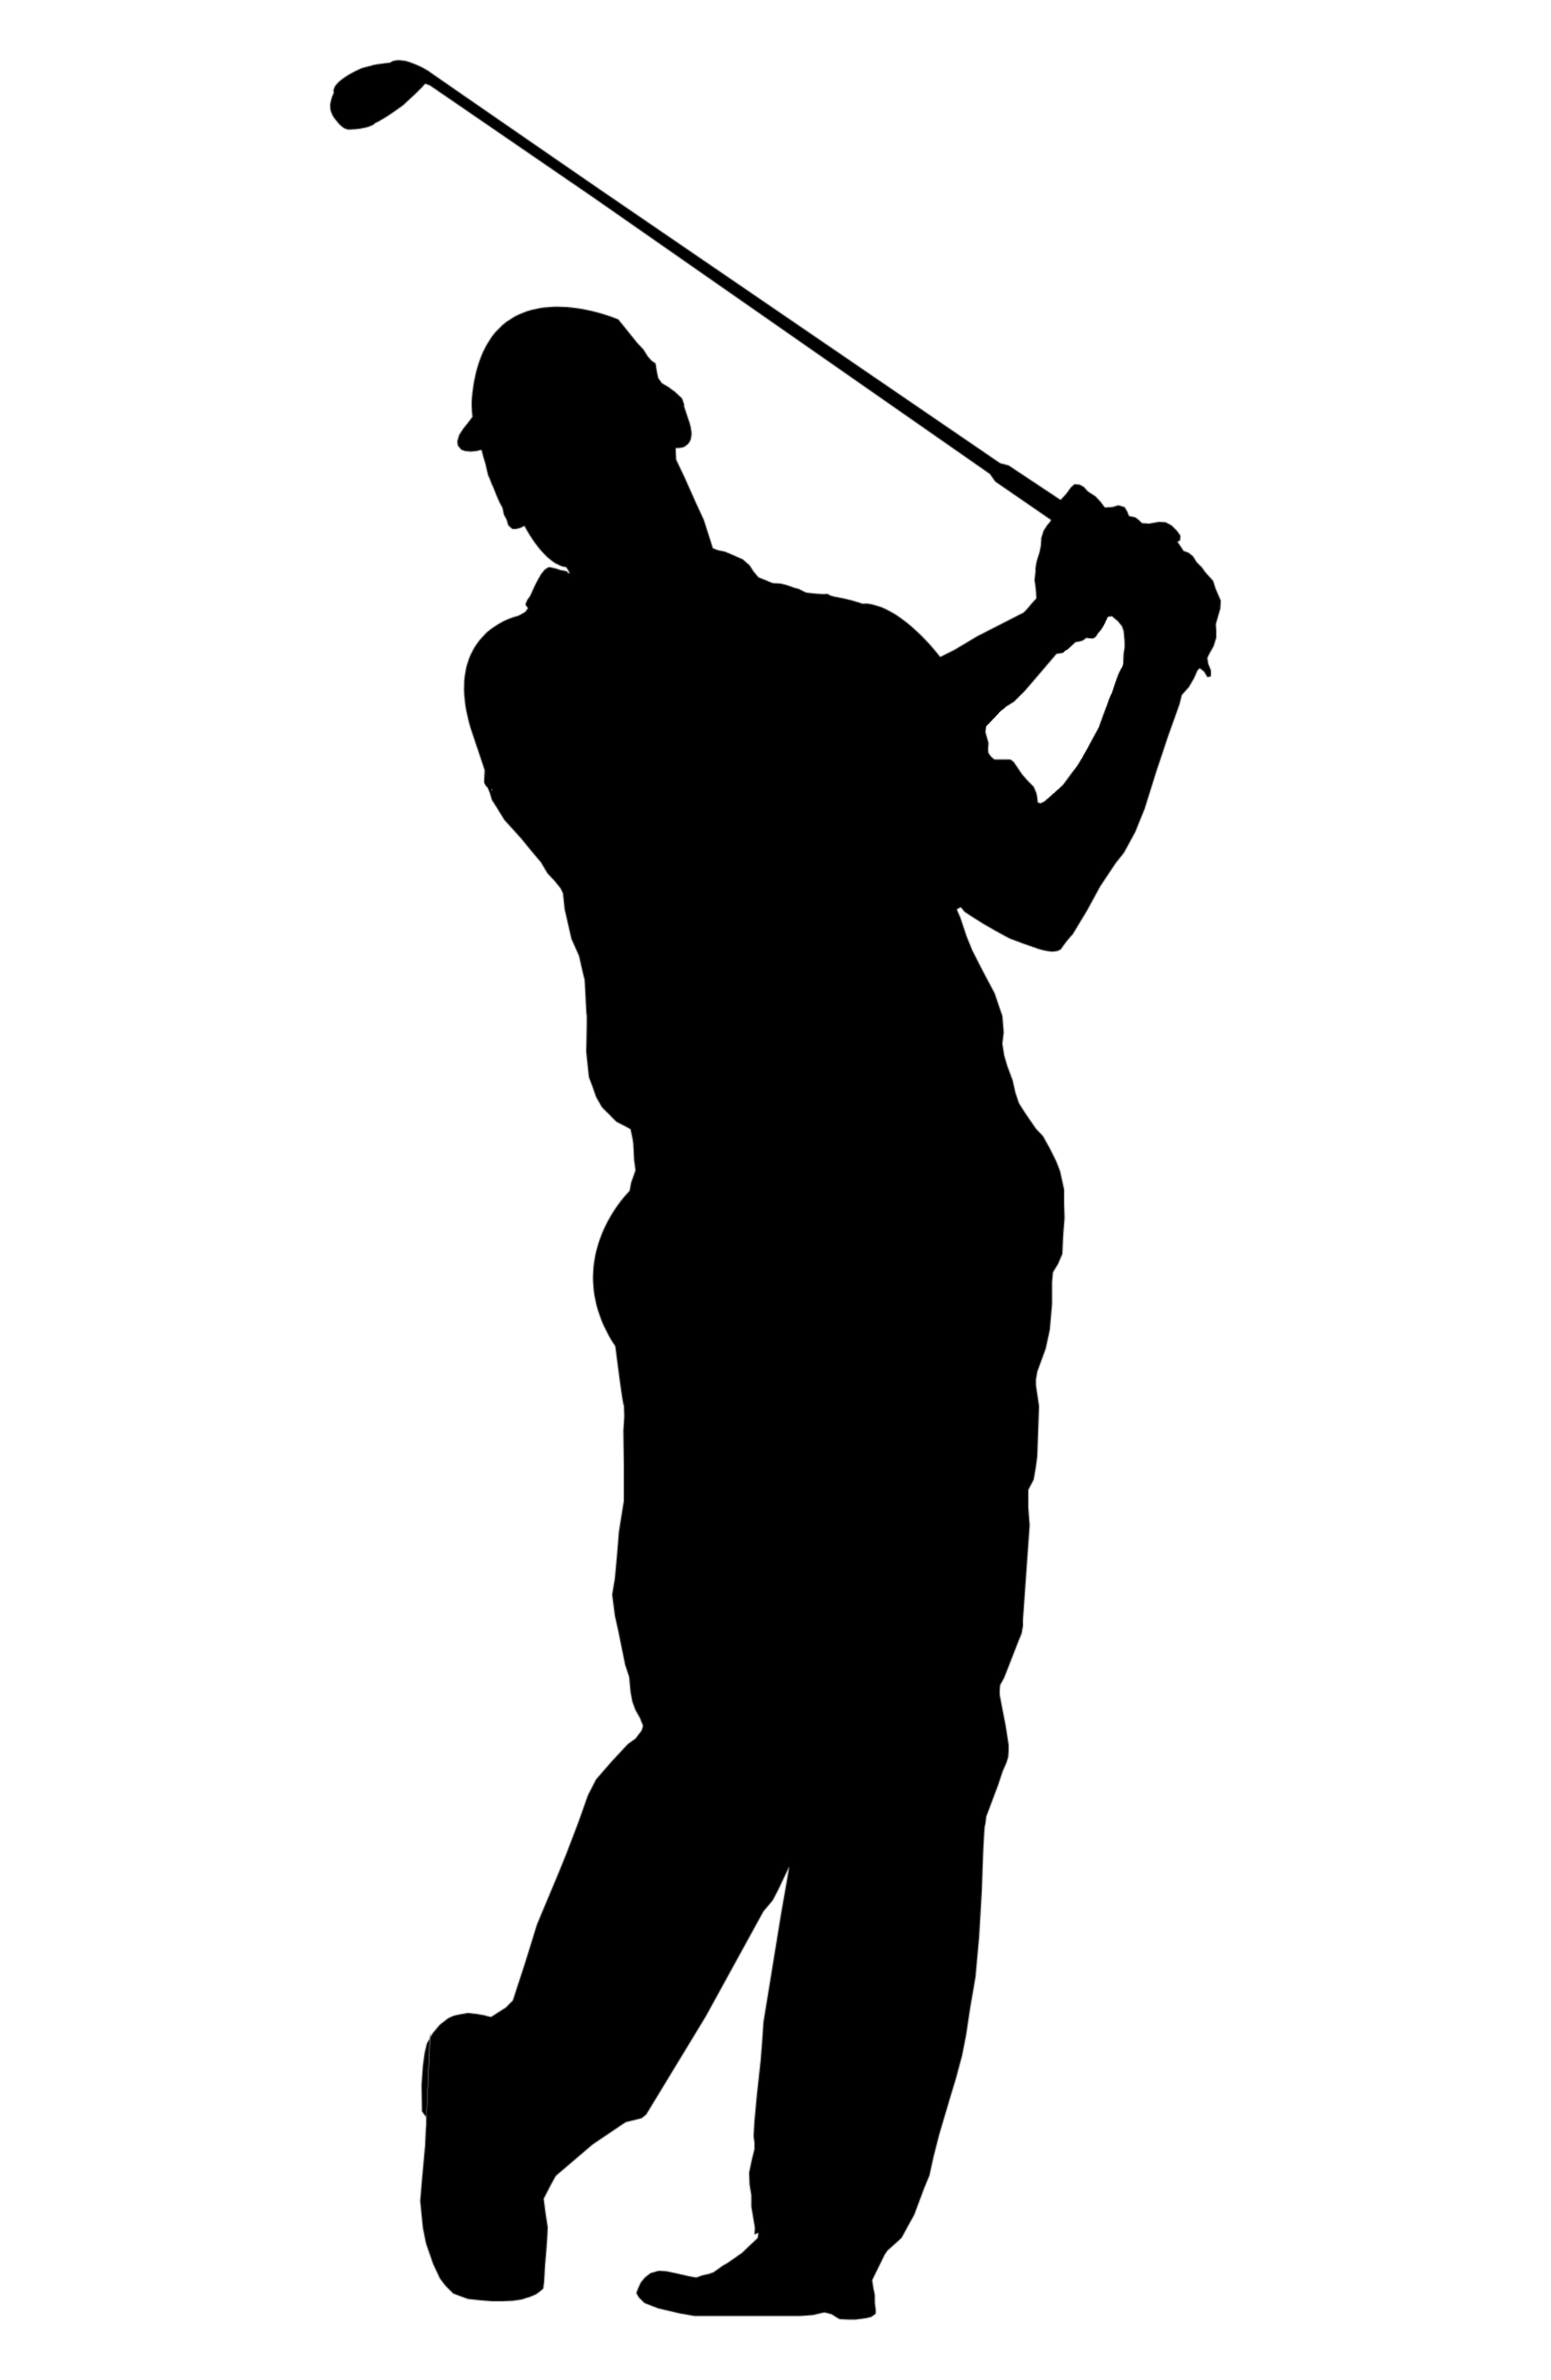 Golfer free golf clipart free clipart images graphics.